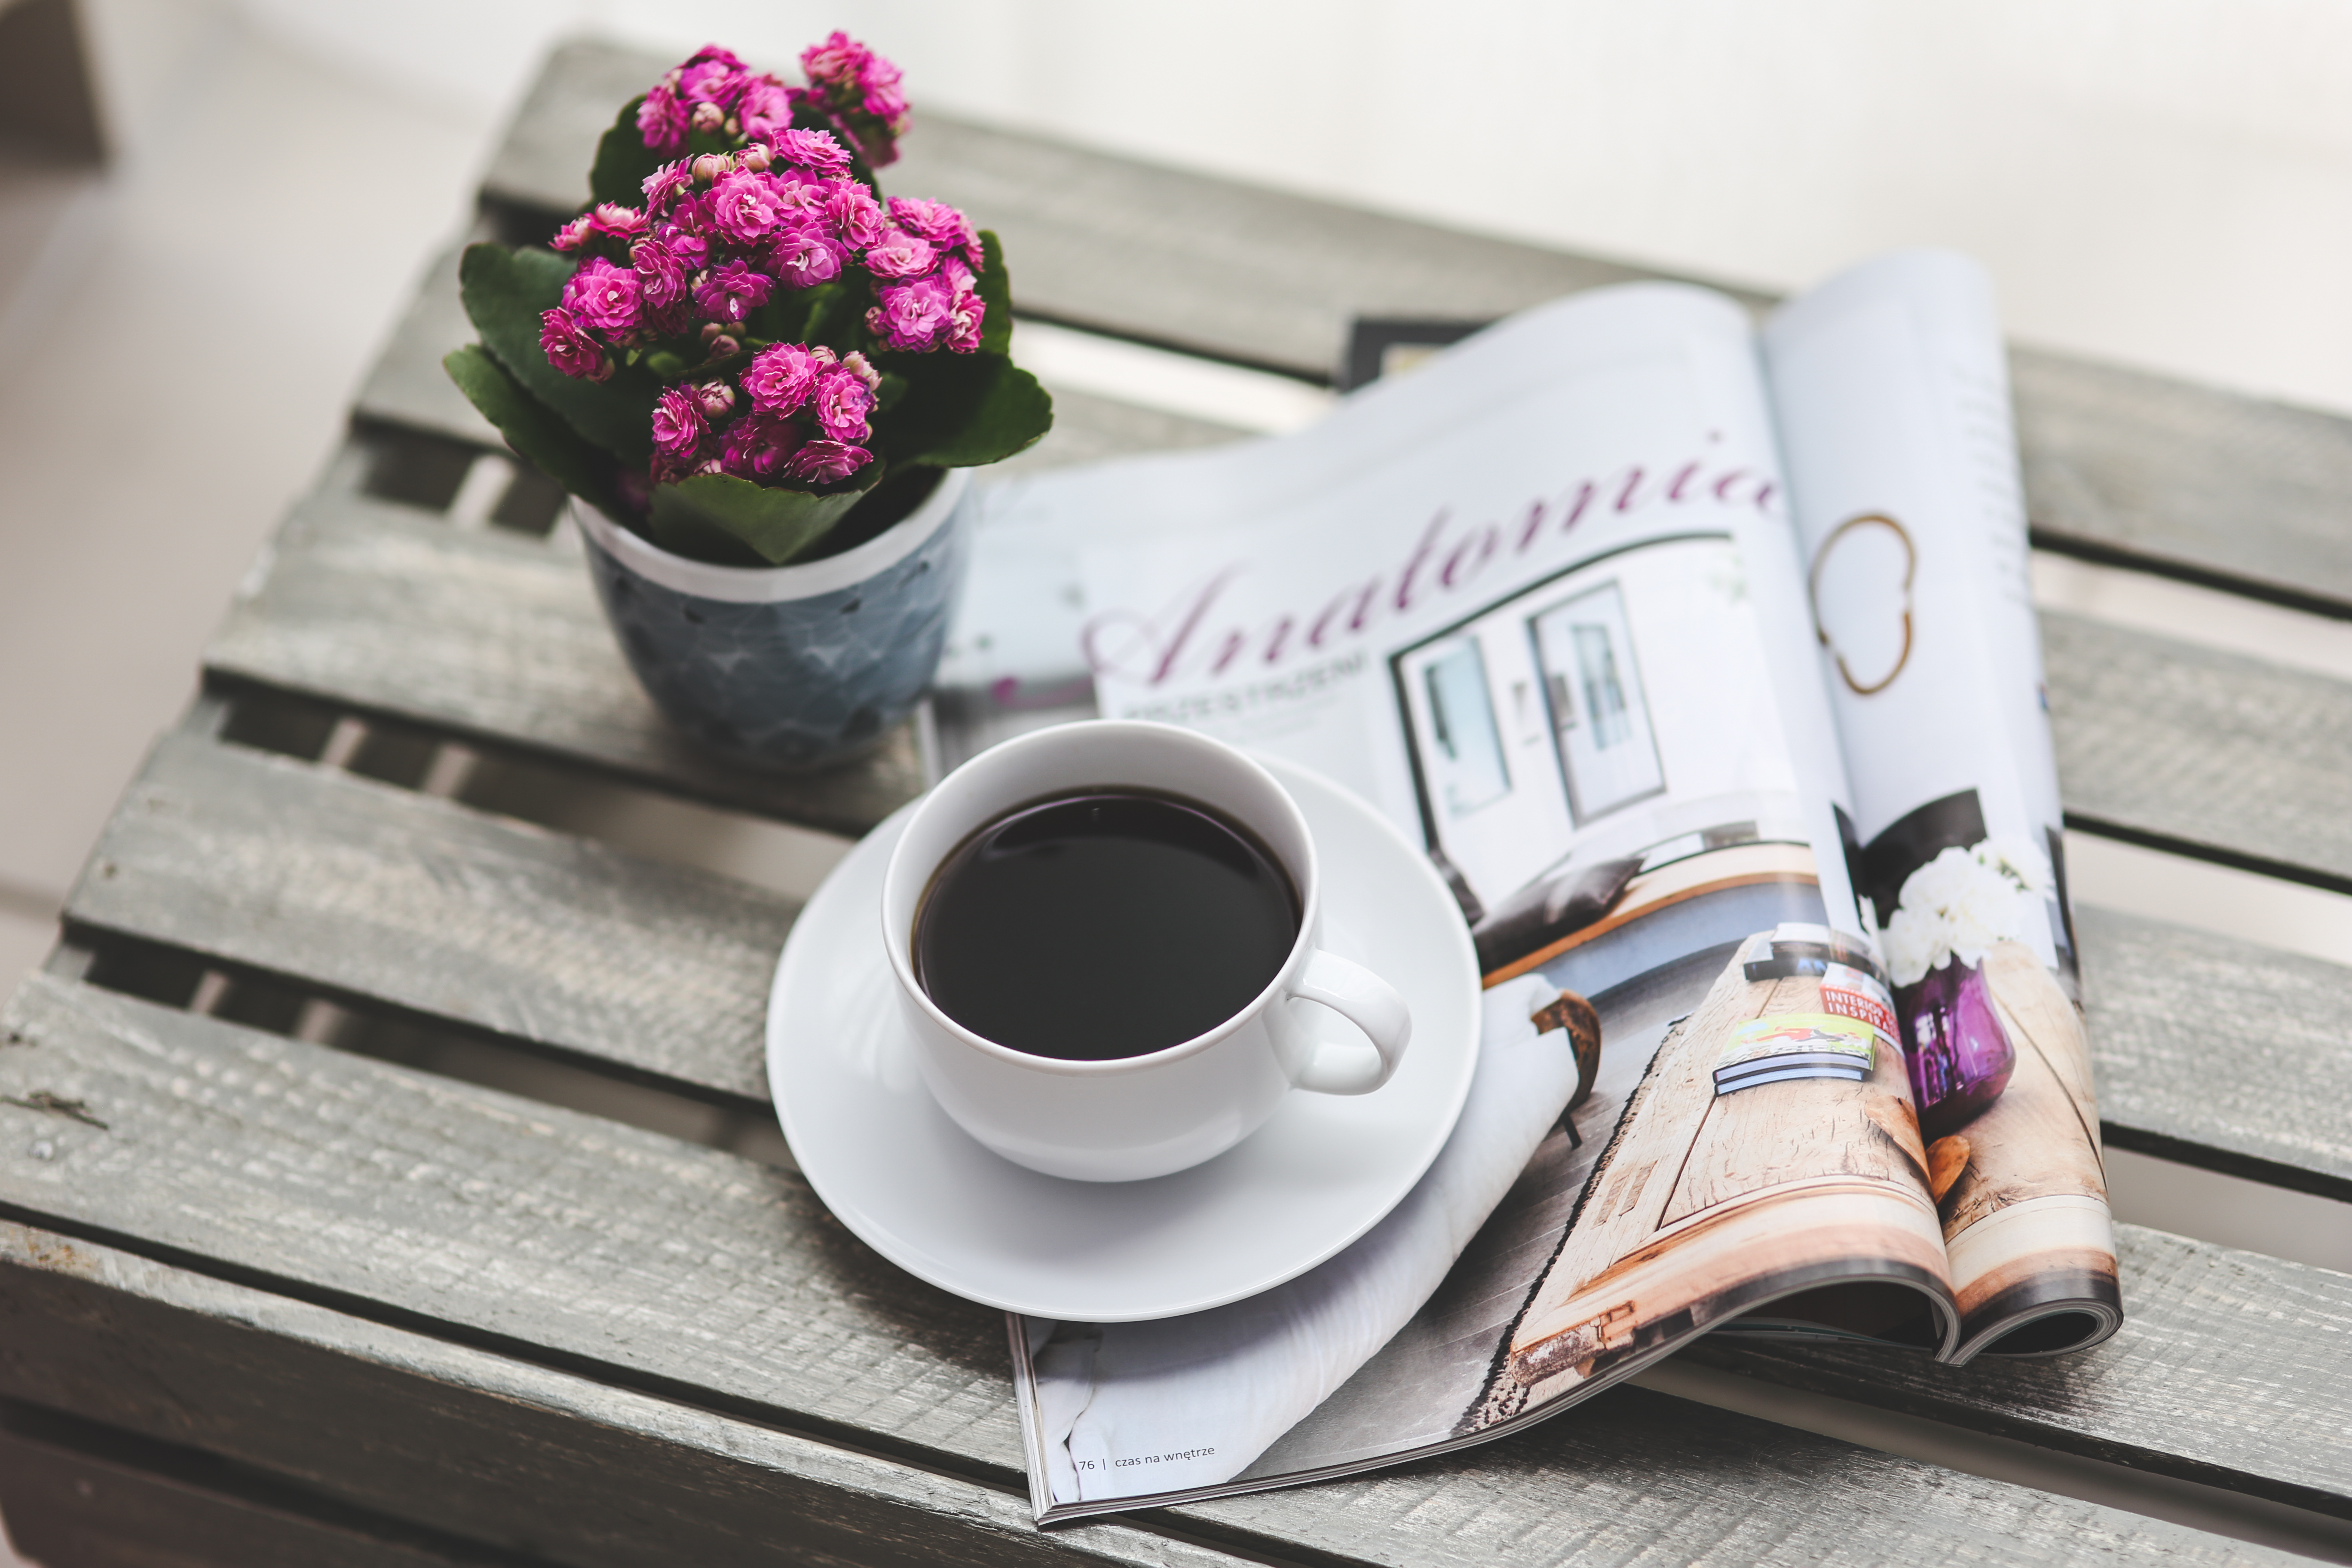 Food & Drinks | For all the coffee lovers out there: 10 leuke feitjes over koffie